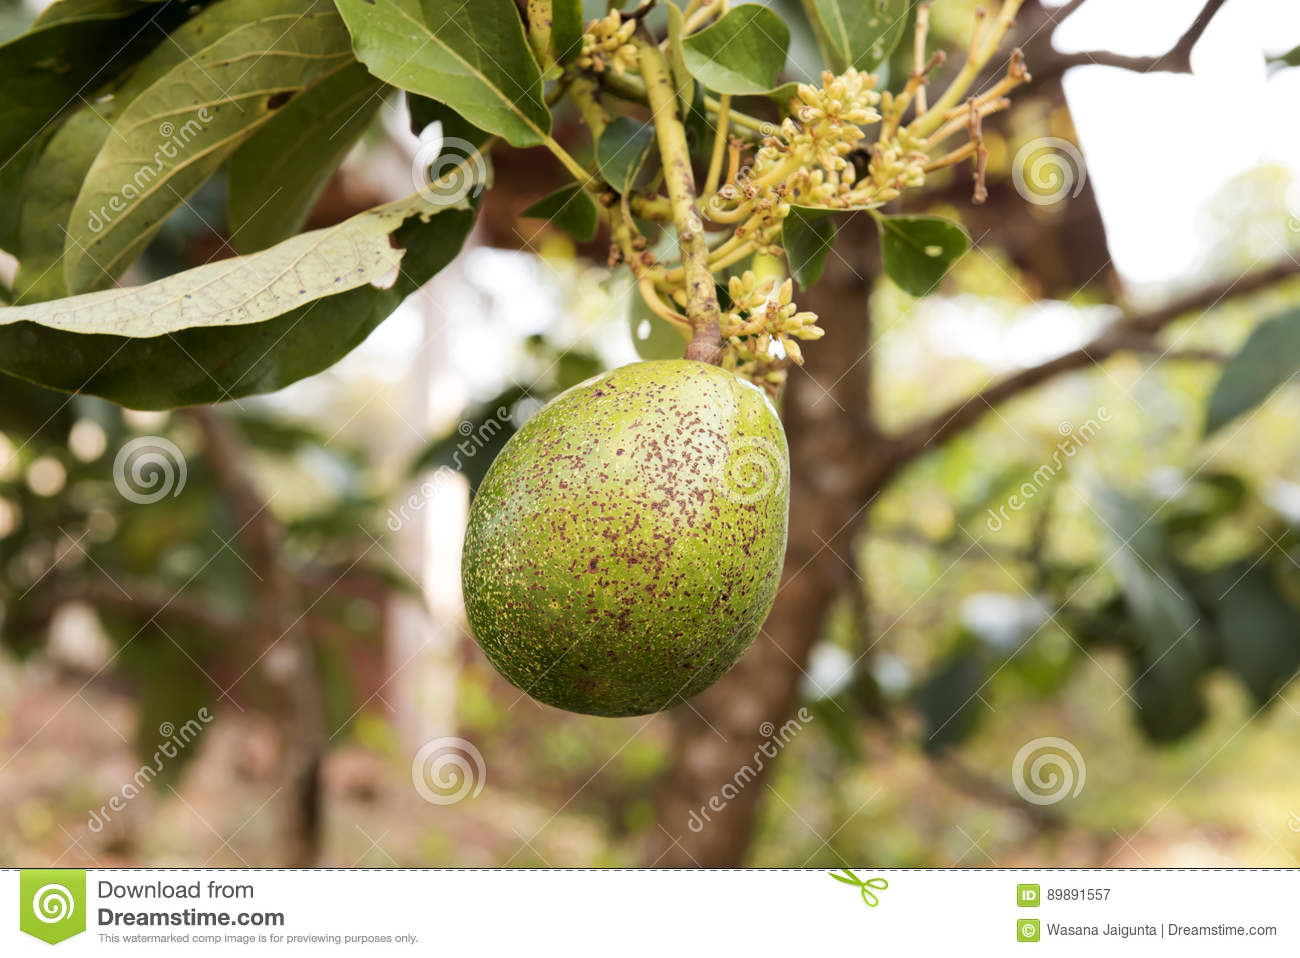 Avocado fruit on tree  stock image  Image of care, extracts